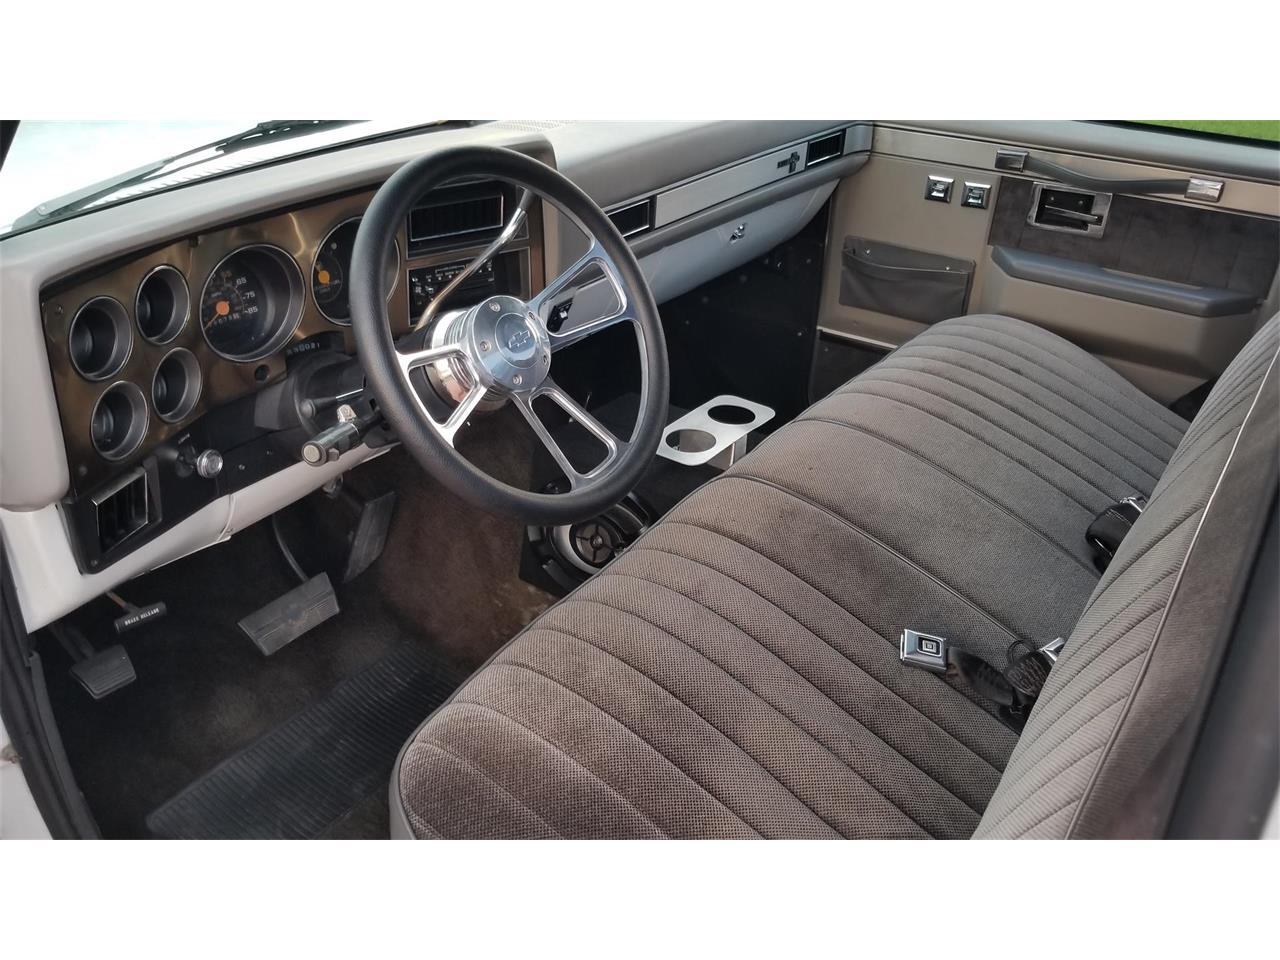 1987 Chevrolet C10 for sale in Conroe, TX – photo 8